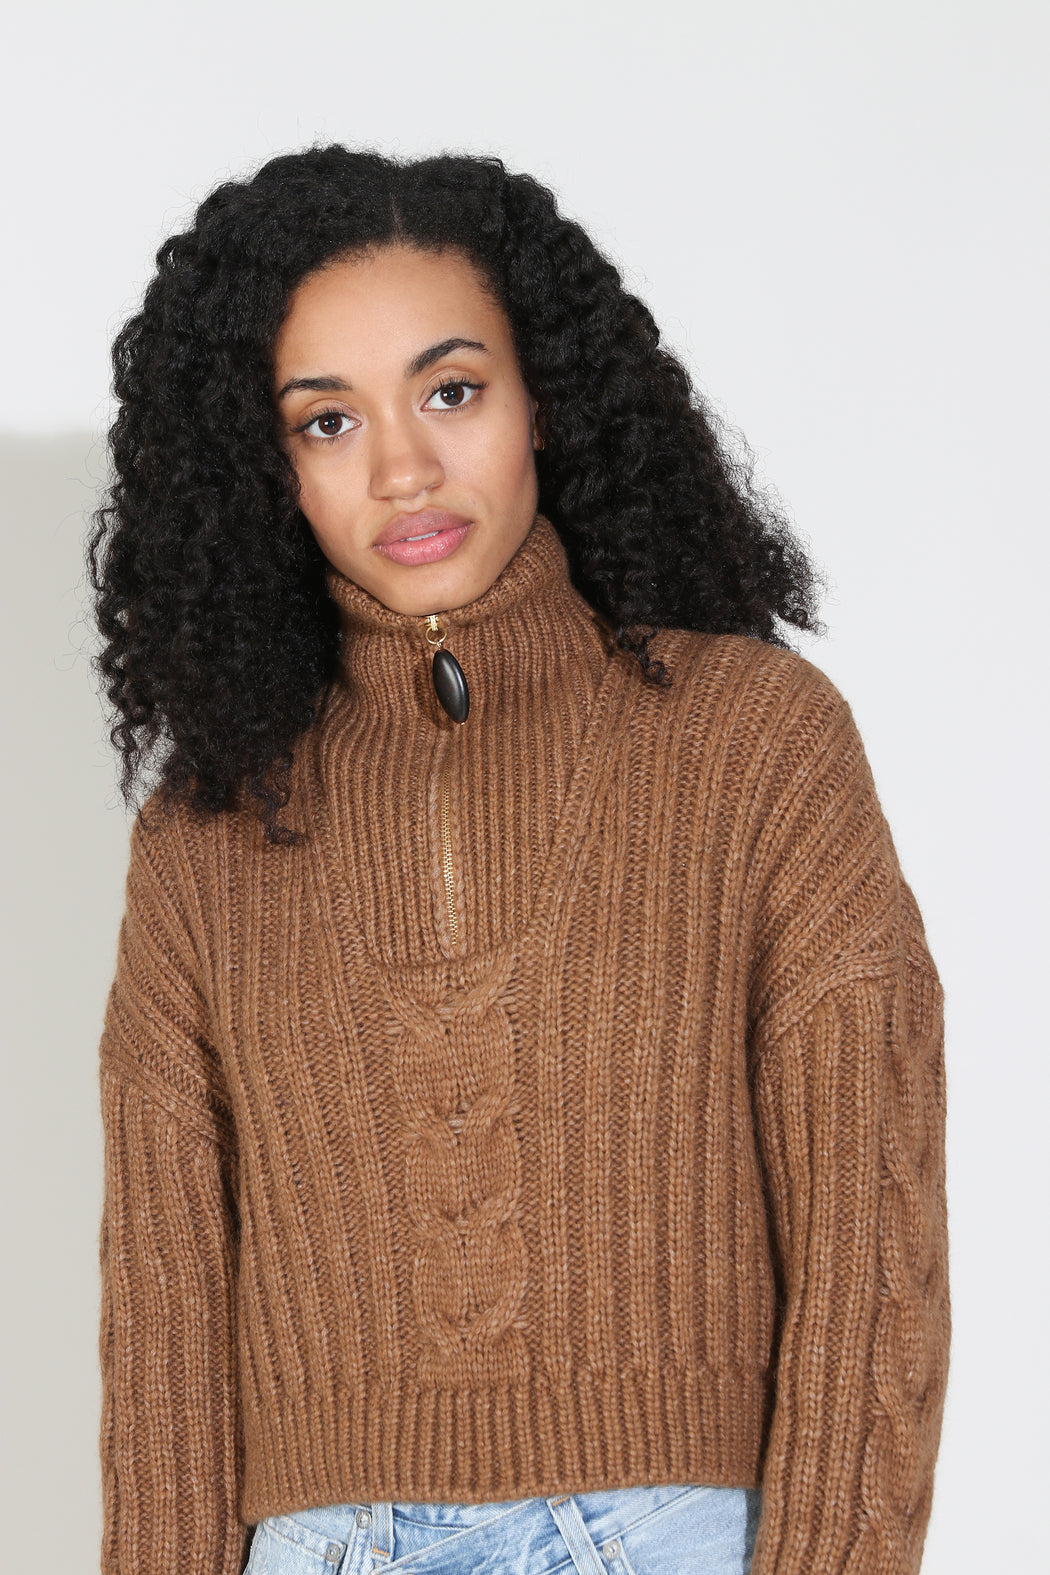 Nanushka Eria Cropped Cable Knit Sweater in Brown